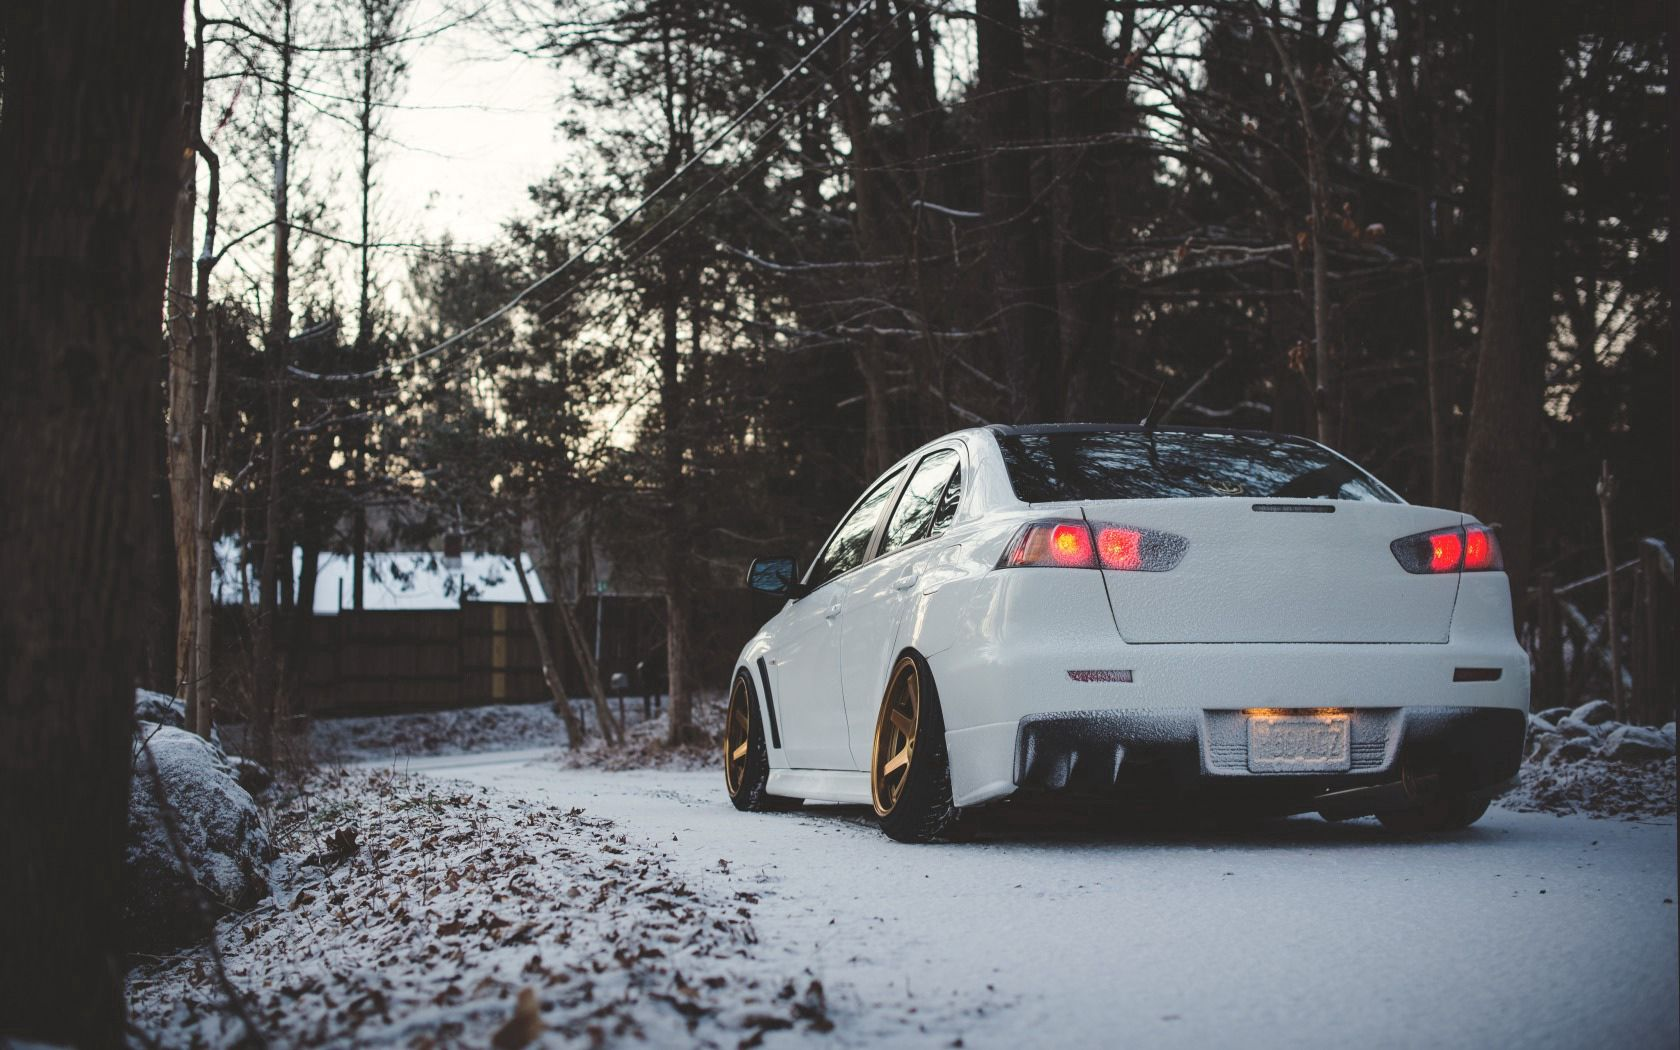 145570 download wallpaper Cars, Mitsubishi, Lancer, Back View, Rear View, Winter screensavers and pictures for free